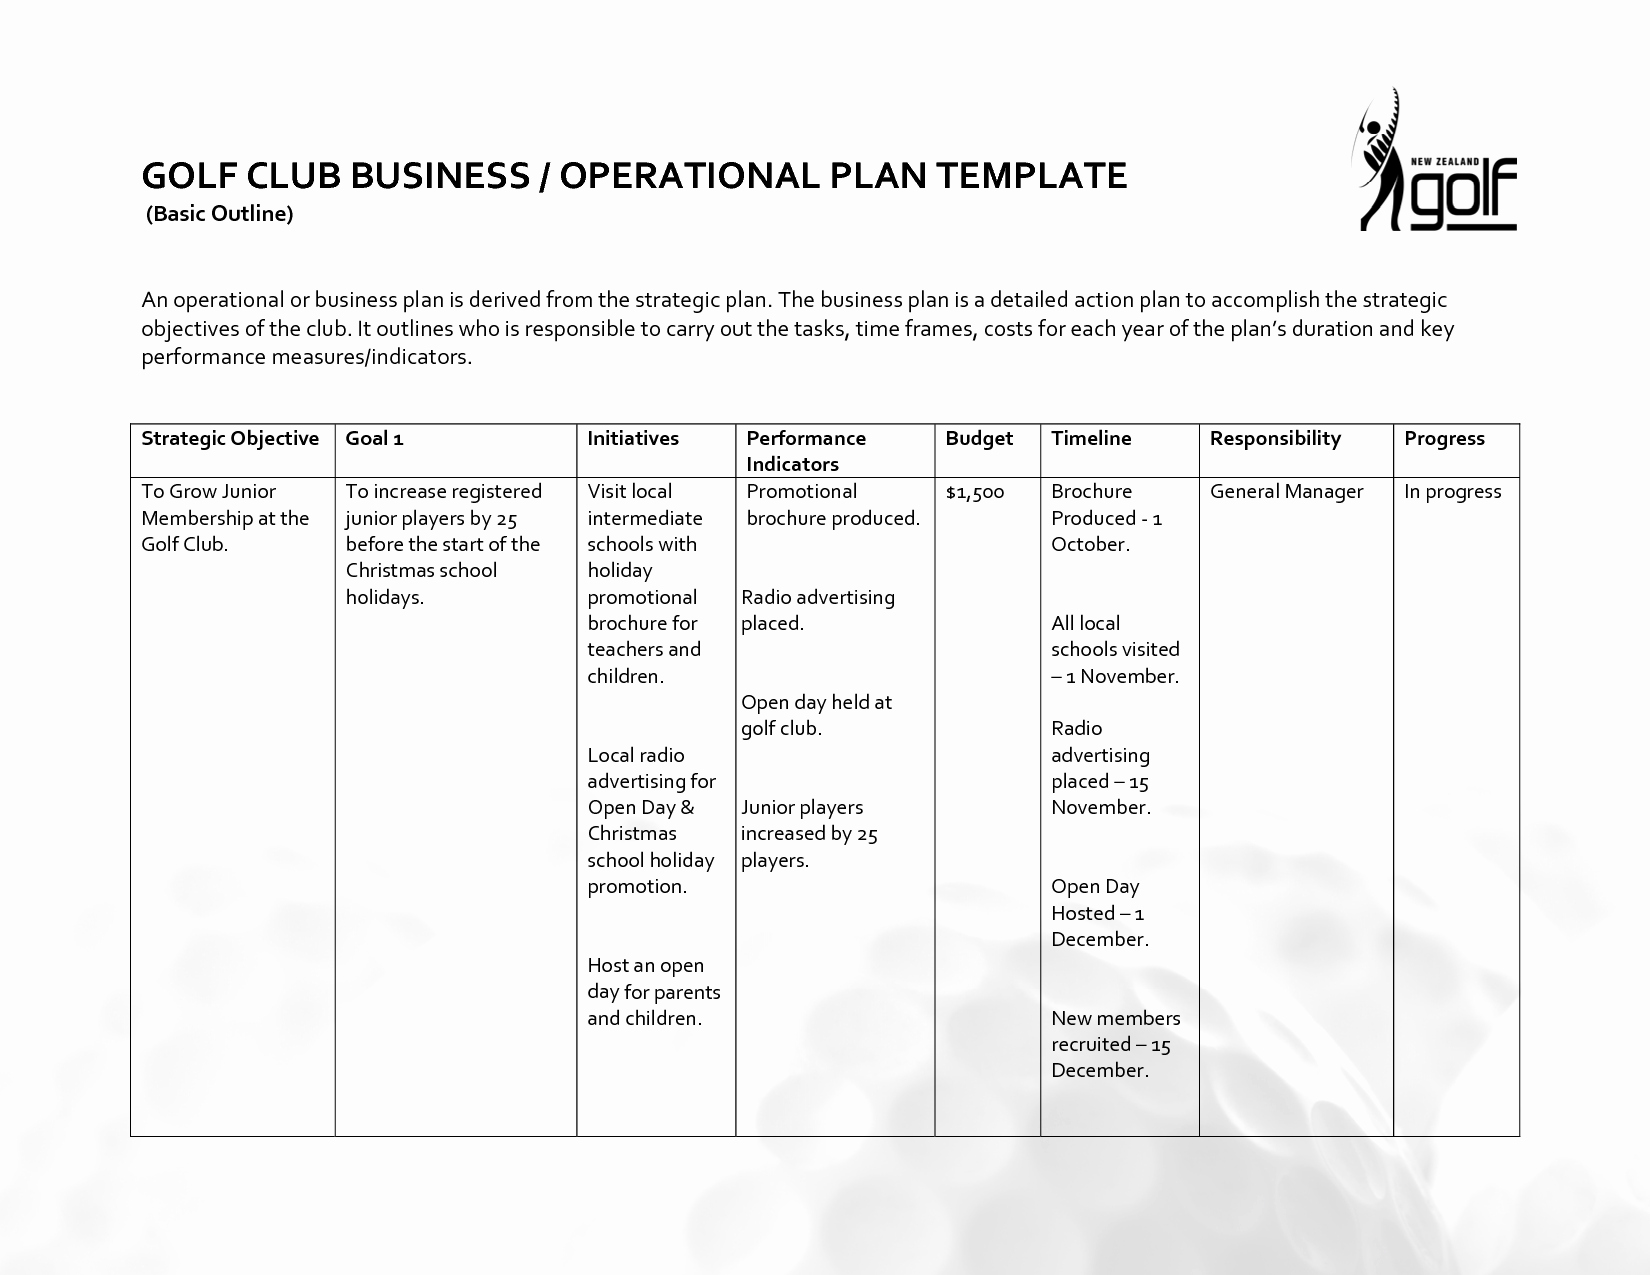 Annual Operating Plan Template Luxury Operational Plan Template